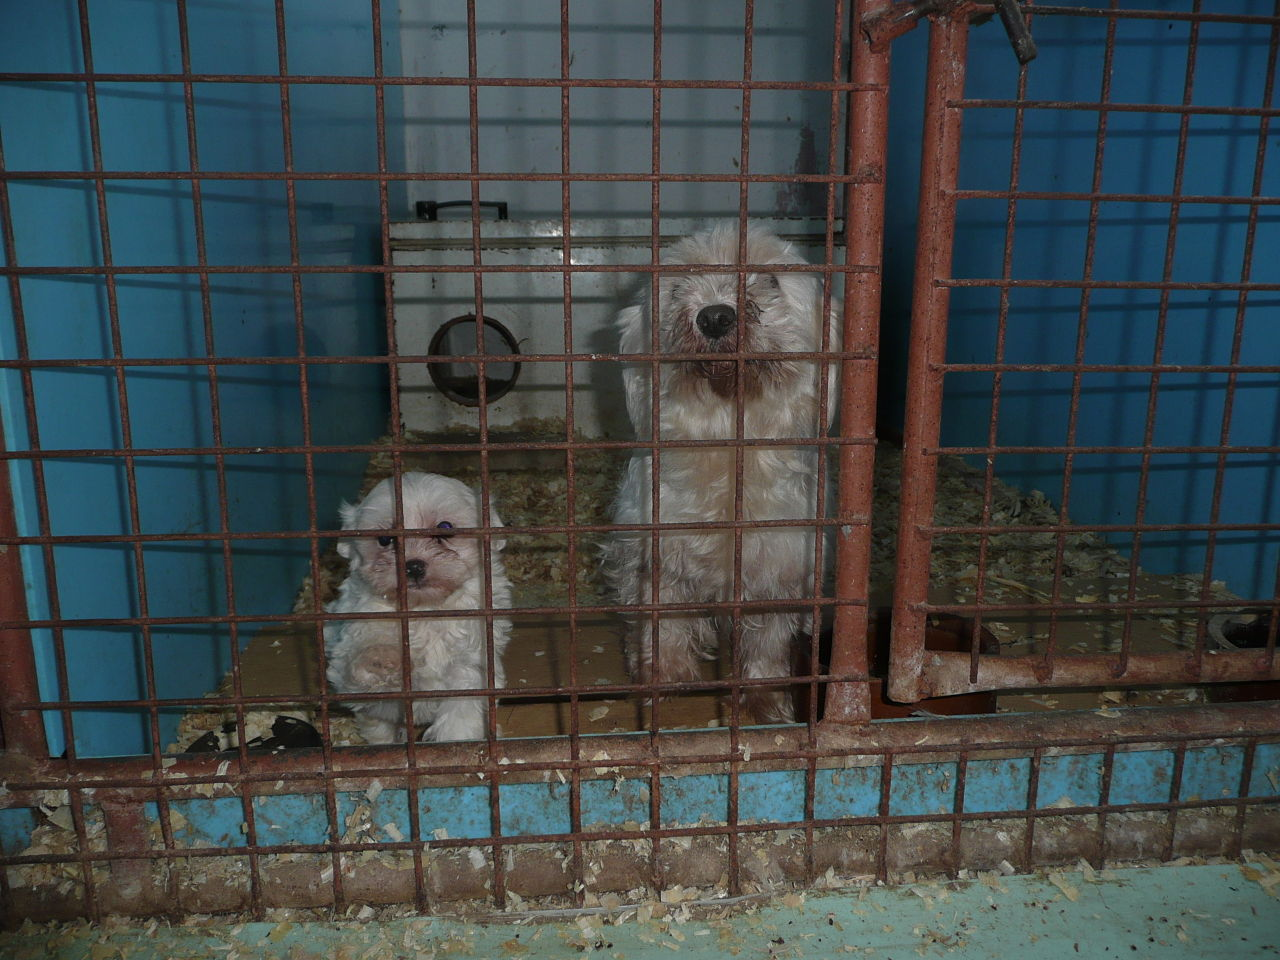 Do Dog Shows Help Fuel the Puppy Mill Industry?